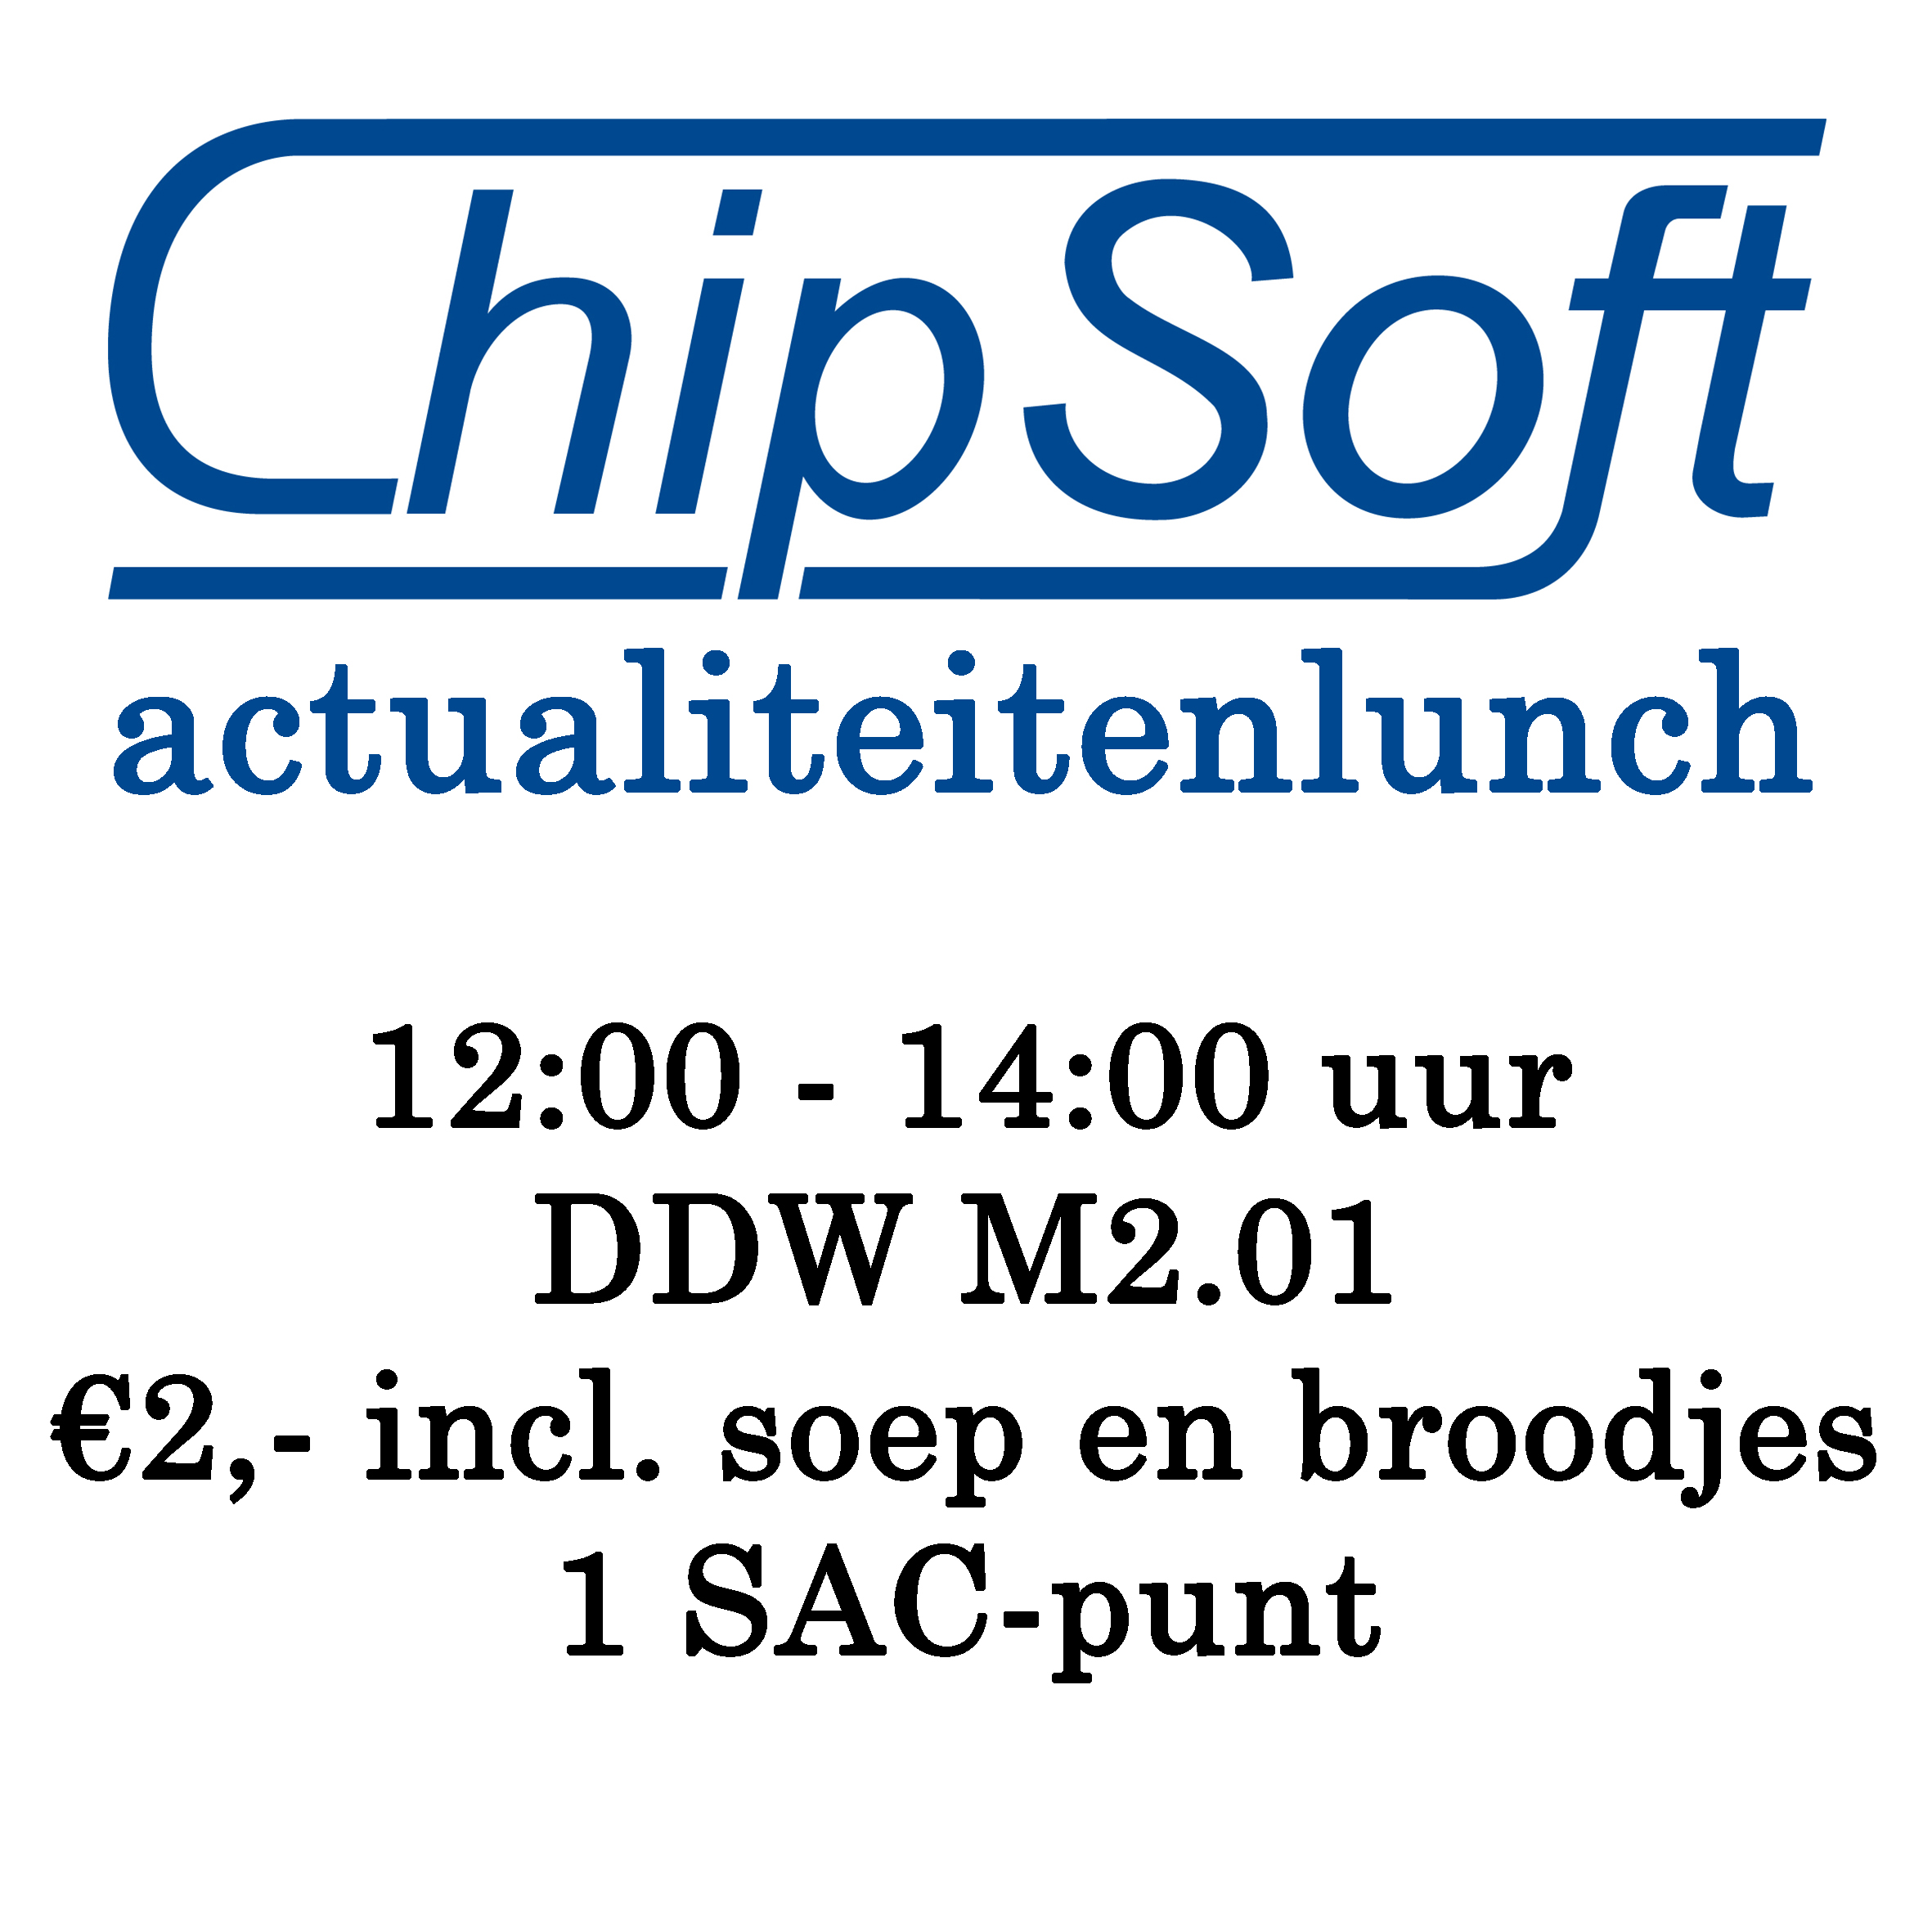 ChipSoft actualiteitenlunch